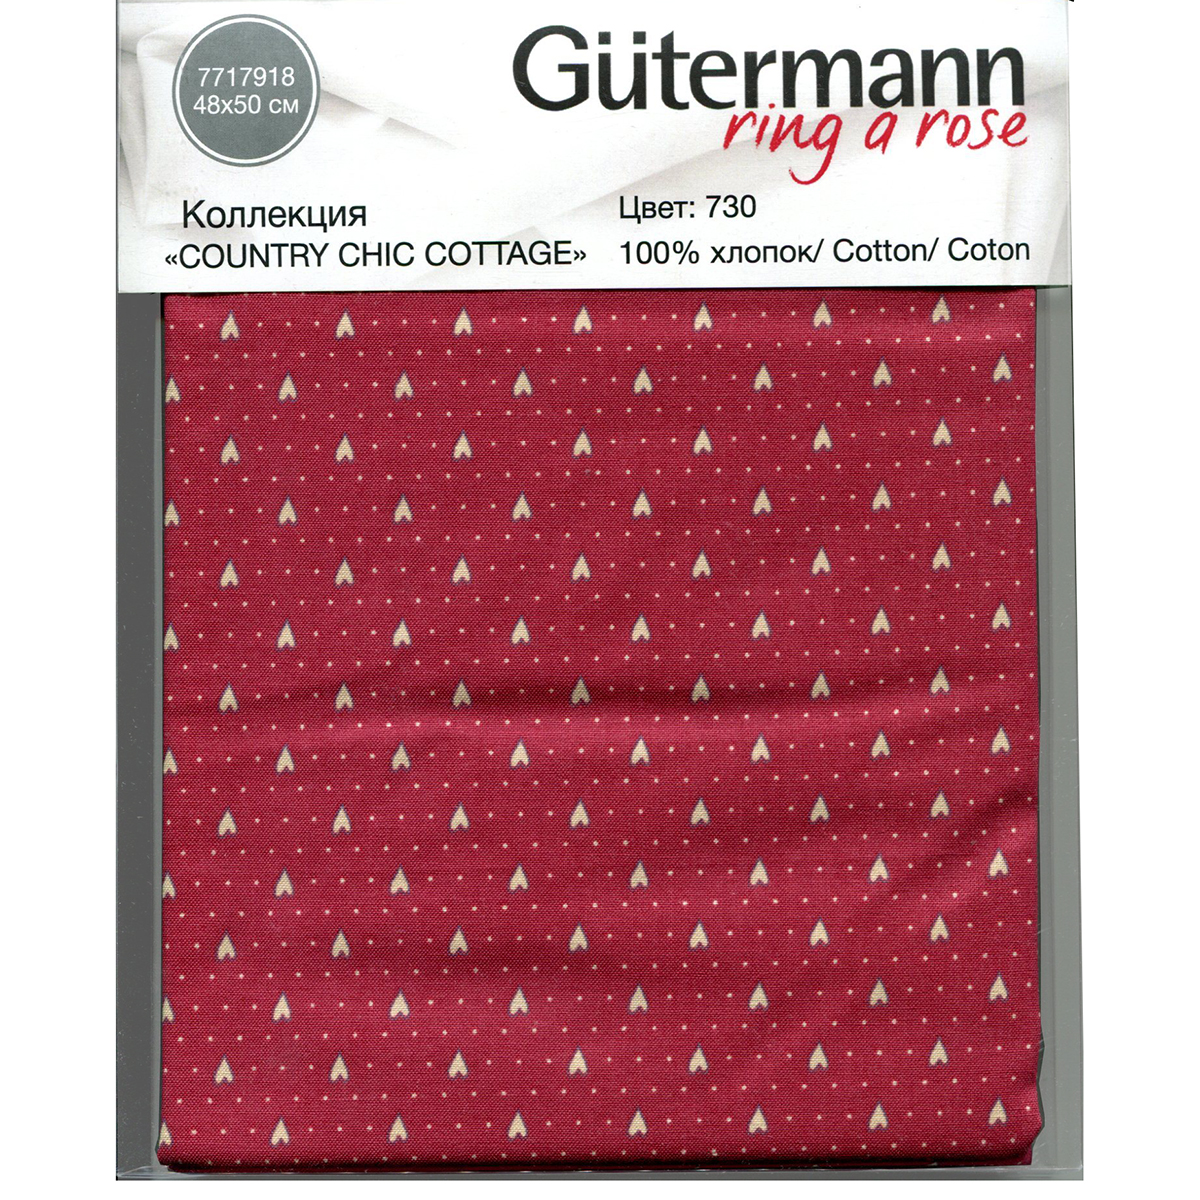 Ткань Gutermann Country Chic Cottage, 48х50 см. 649341_730 ткань gutermann pemberly 48 х 50 см 649101 844